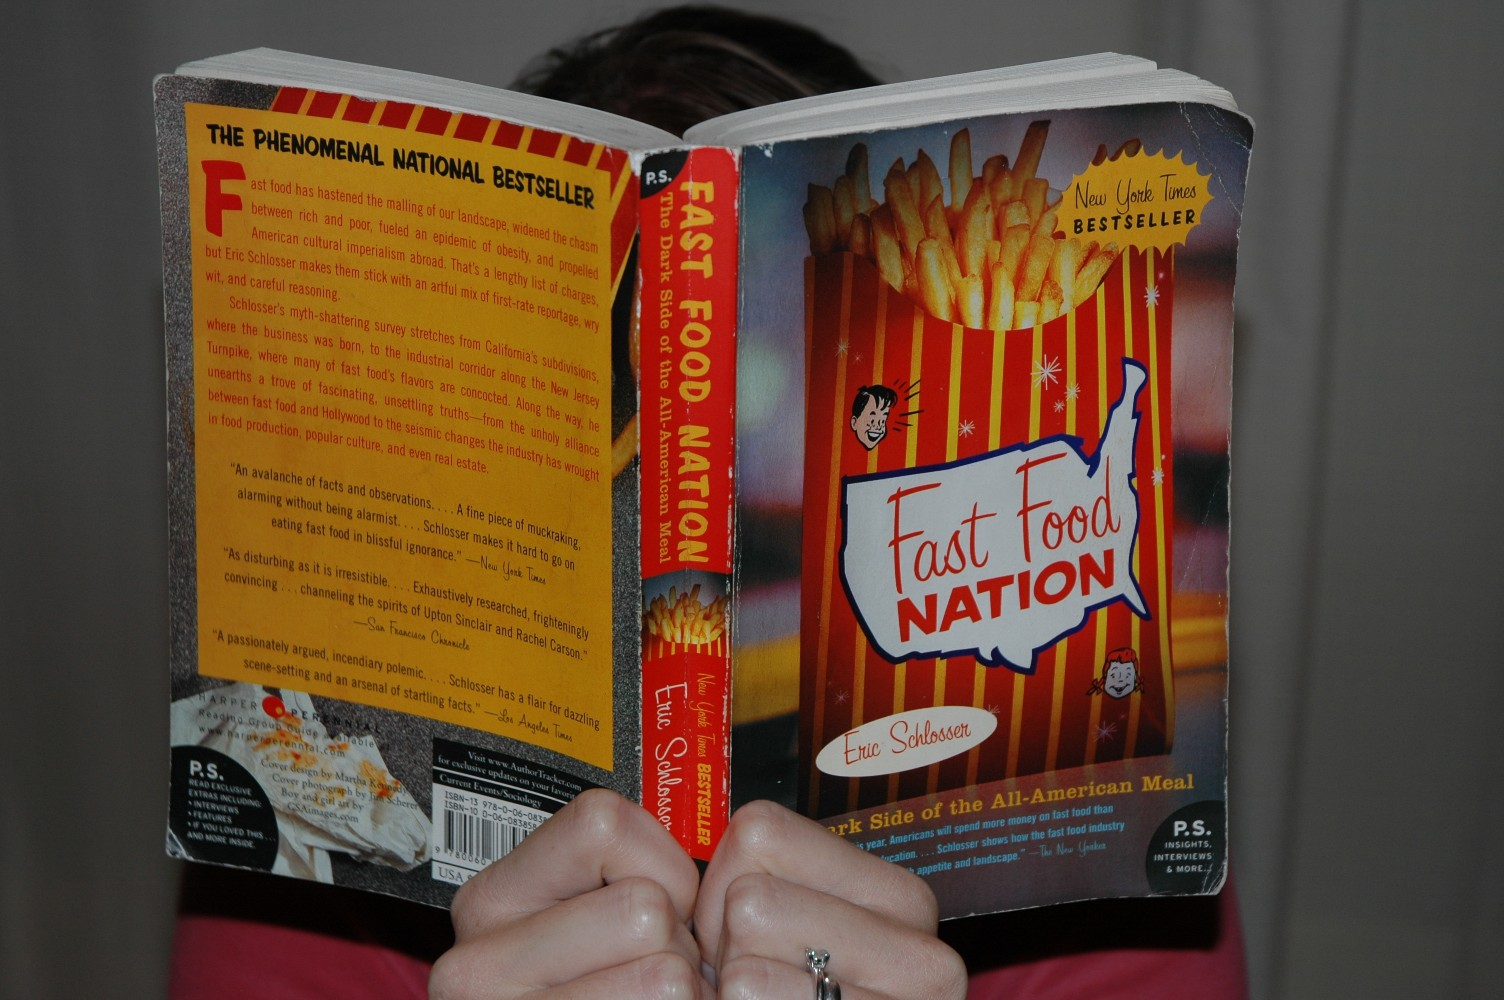 essay of fast food nation